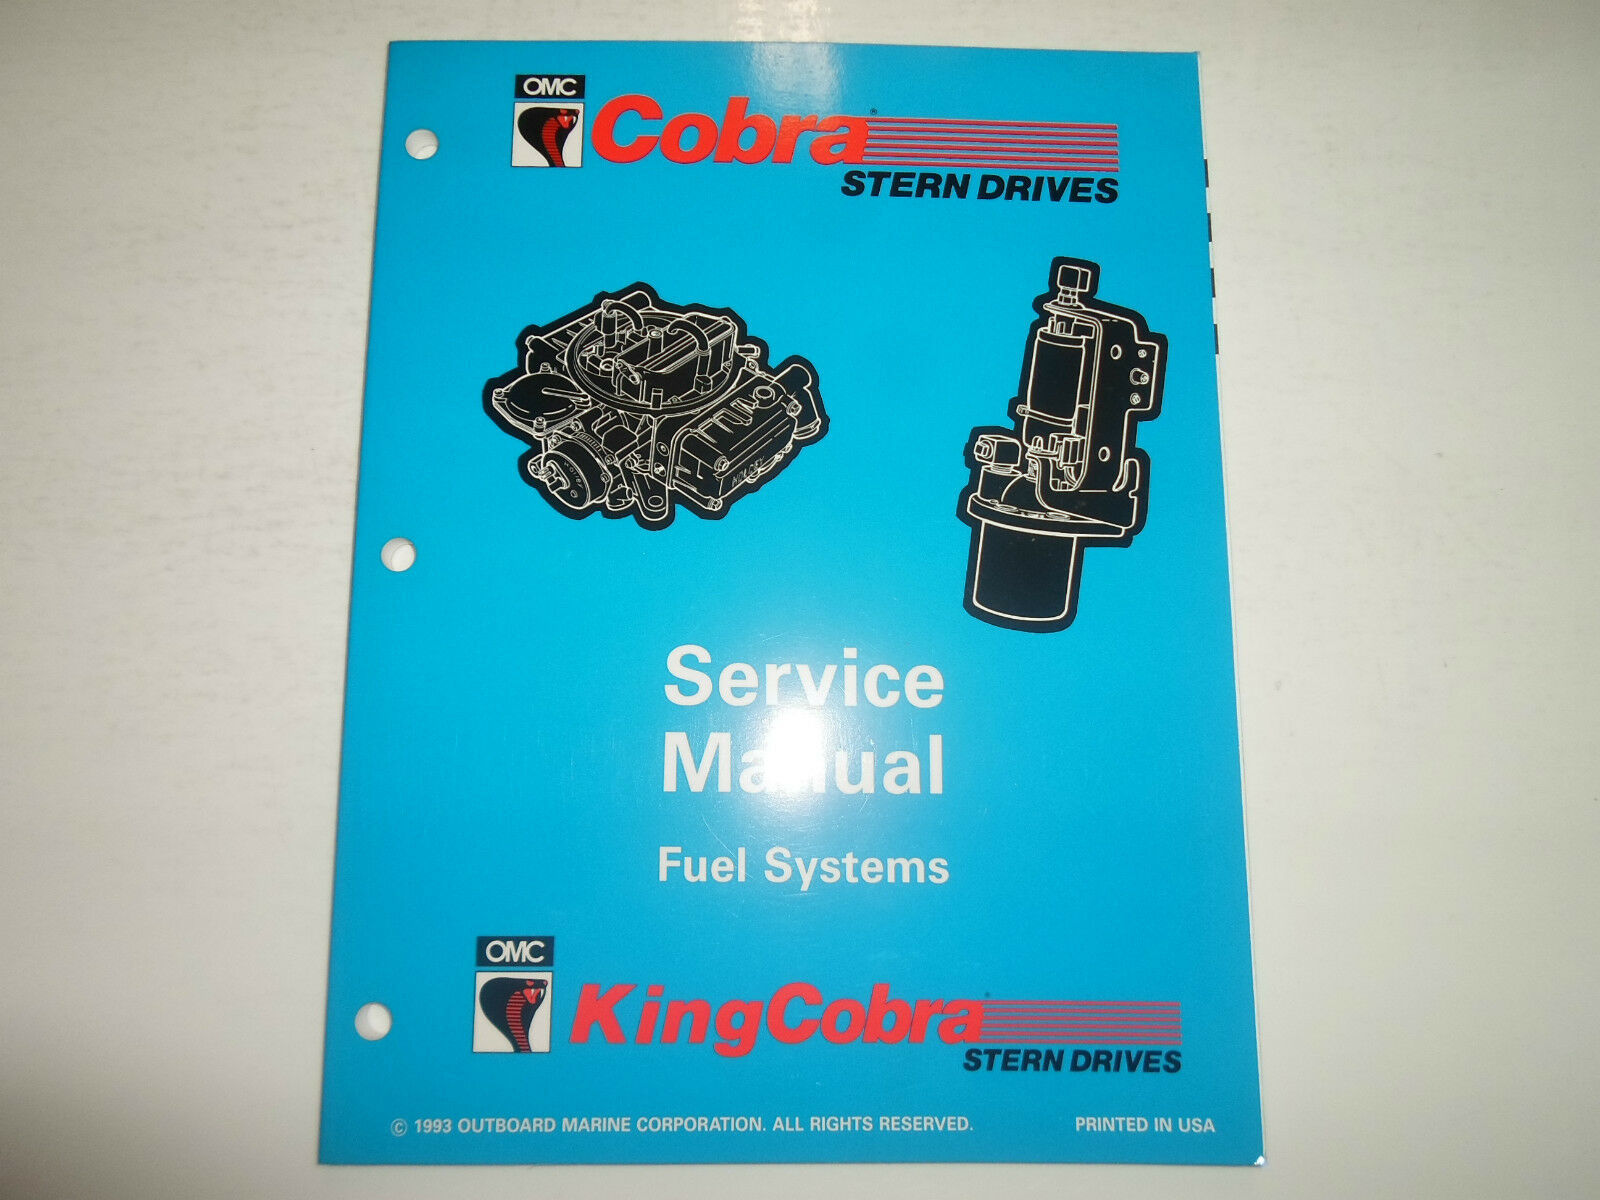 Primary image for 1994 Omc King Cobra Stern Drives Benzin Systeme Service Manuell Fabrik OEM Buch